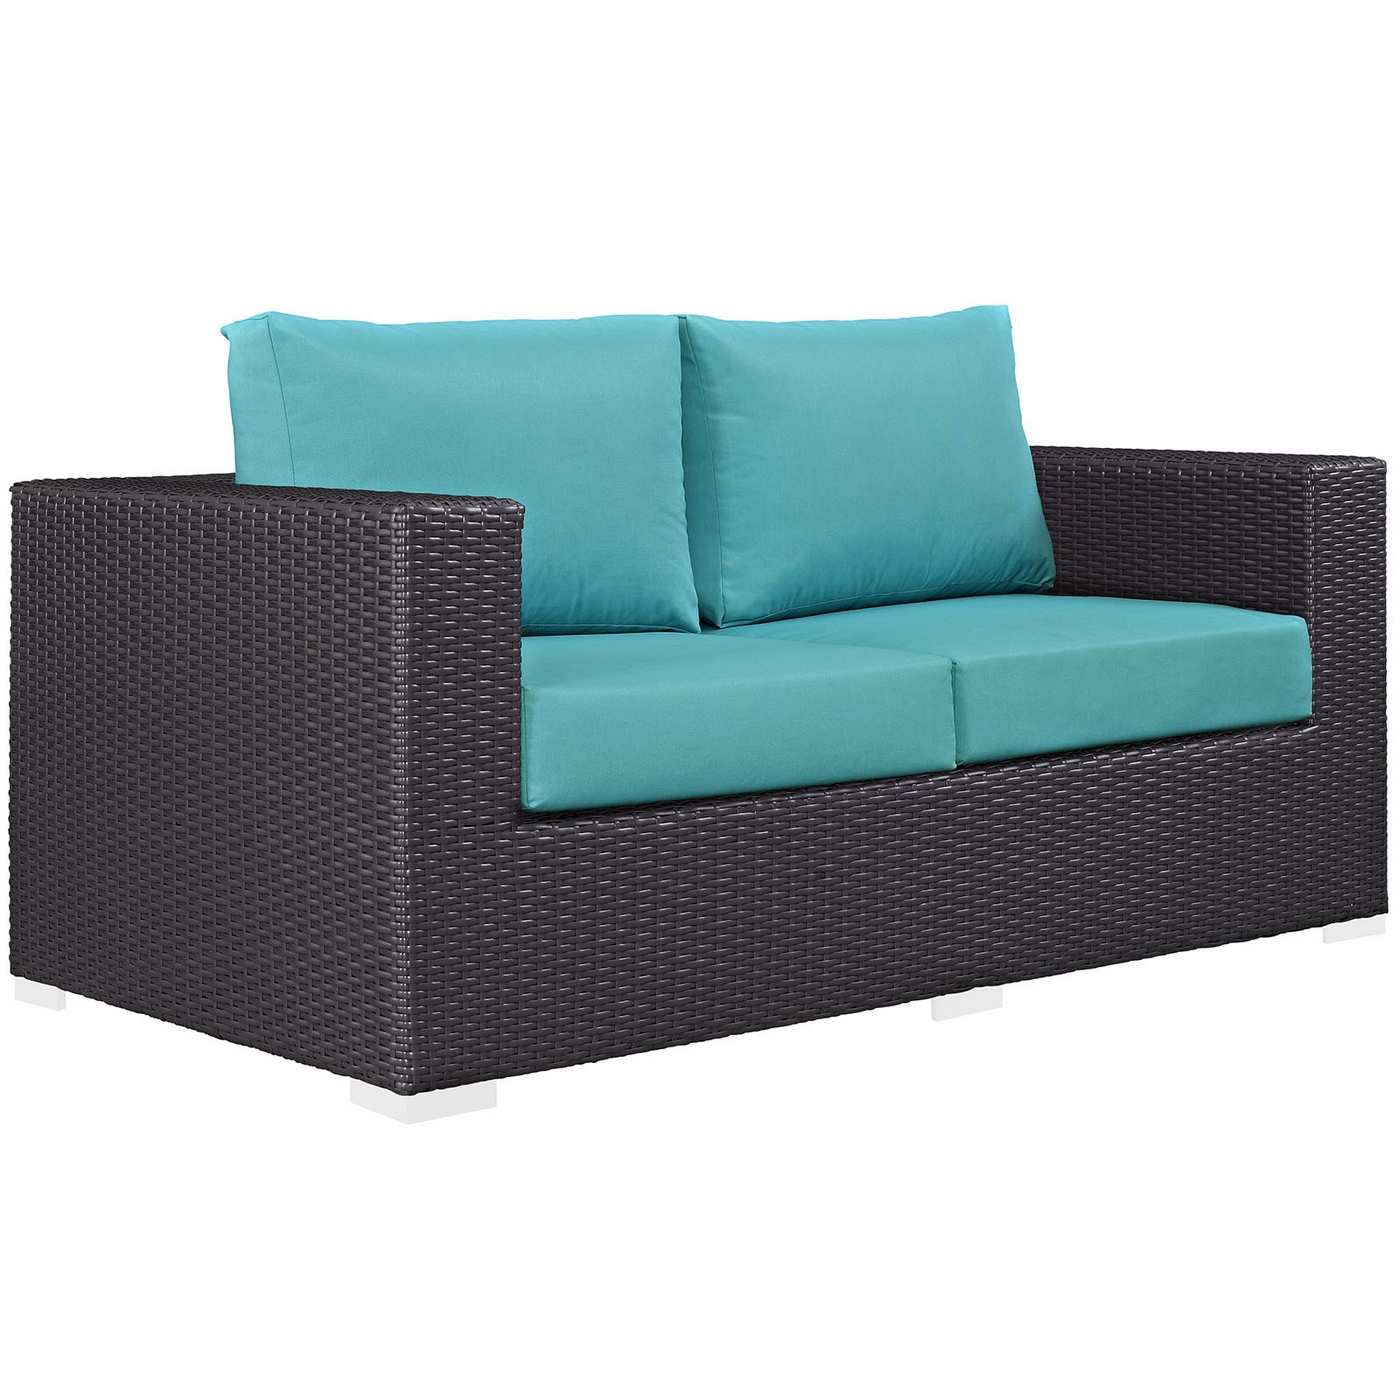 Convene modern rattan outdoor patio loveseat w cushions espresso turquoise Loveseat cushions outdoor